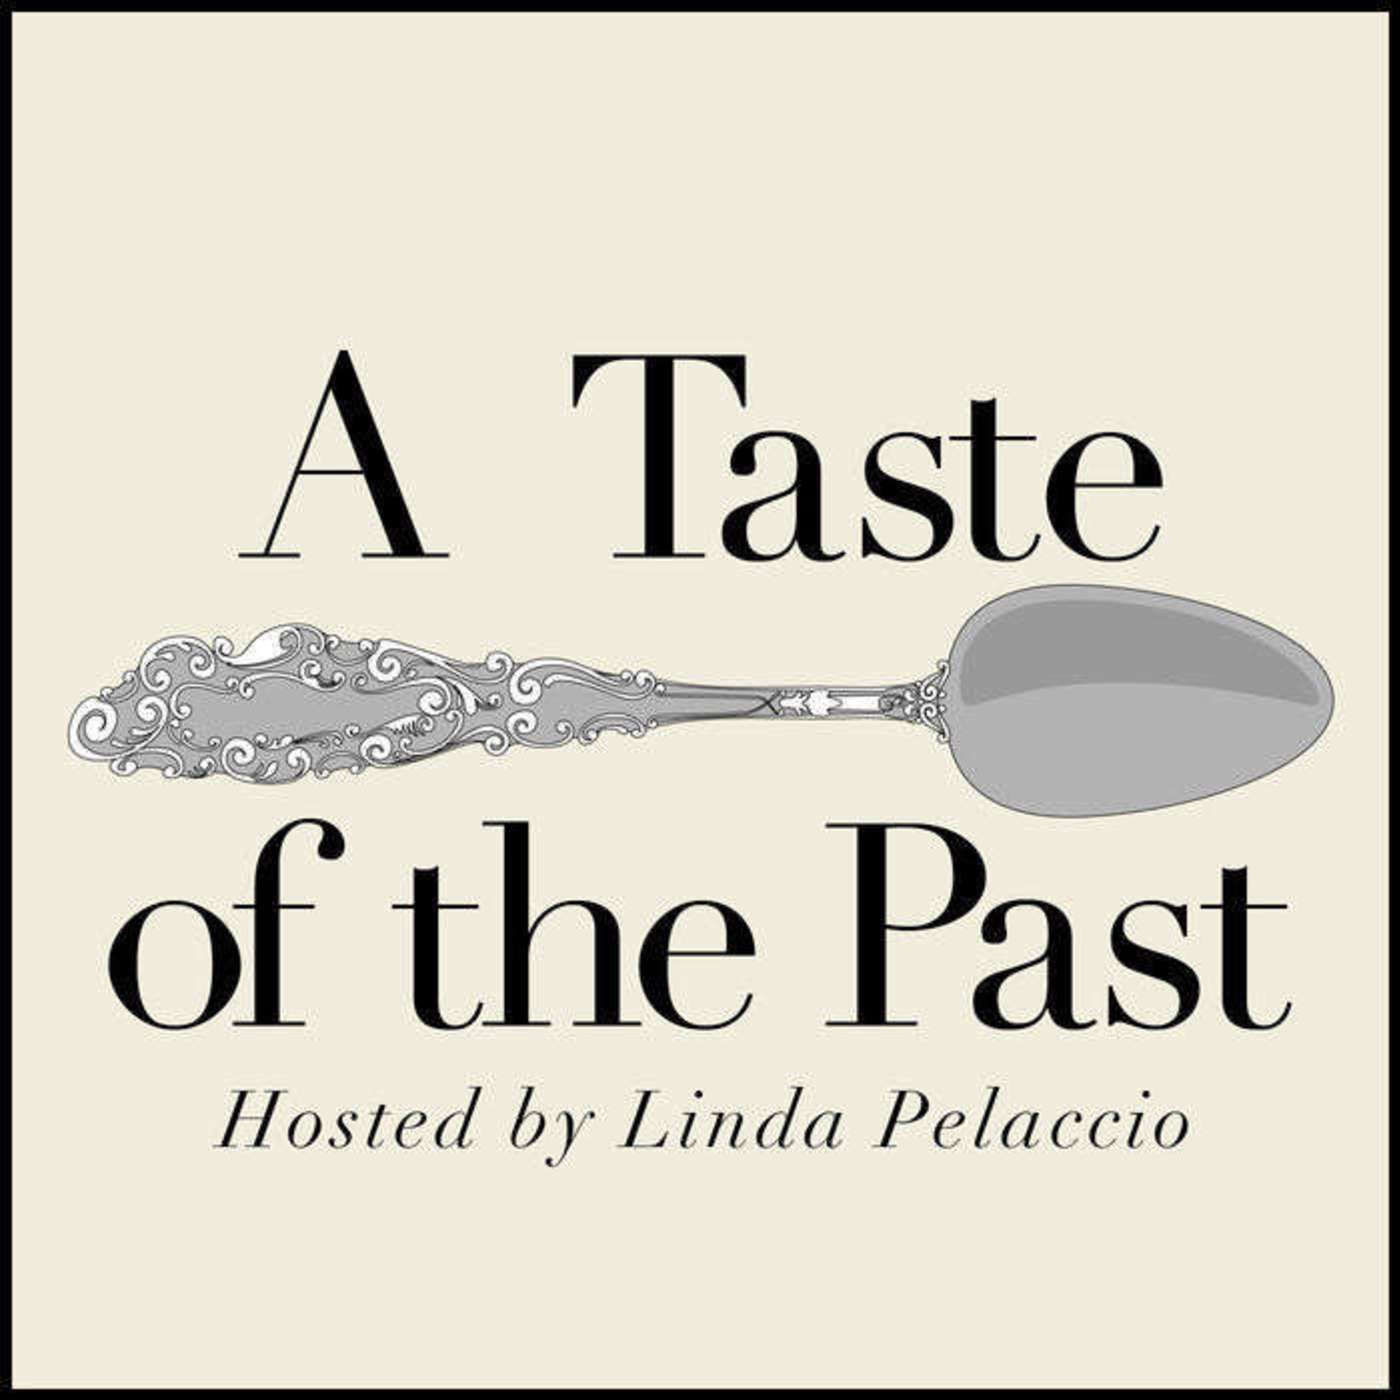 Episode 143: Kitchen History with Tori Avey